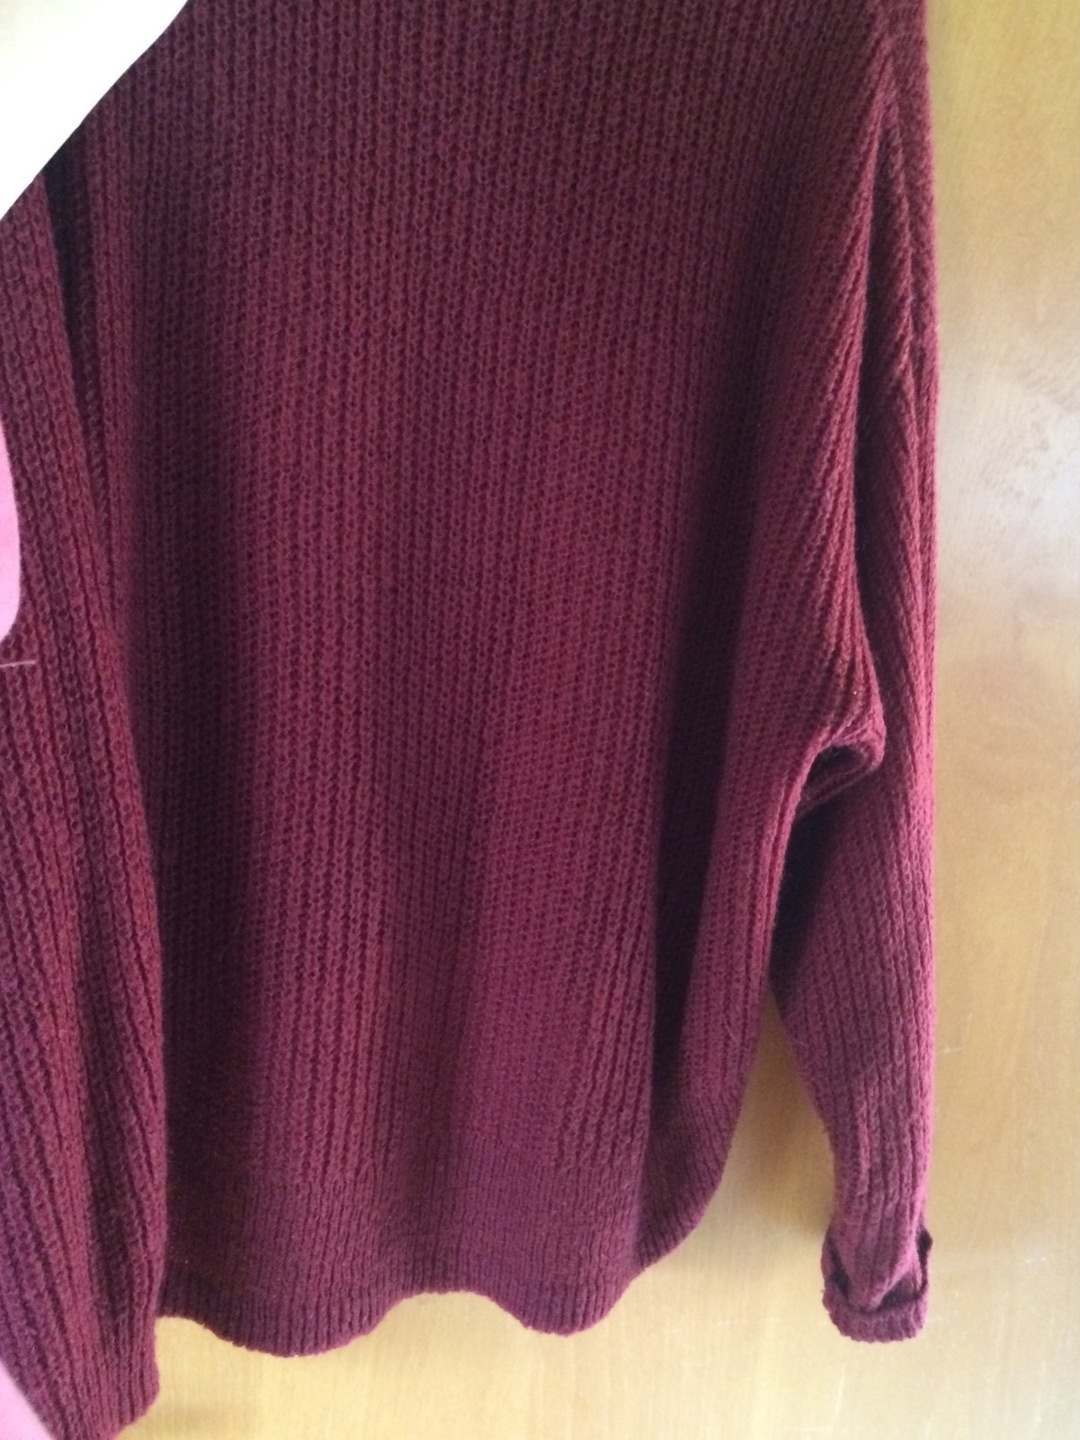 Women's jumpers & cardigans - L.O.G.G. (H&M) photo 4